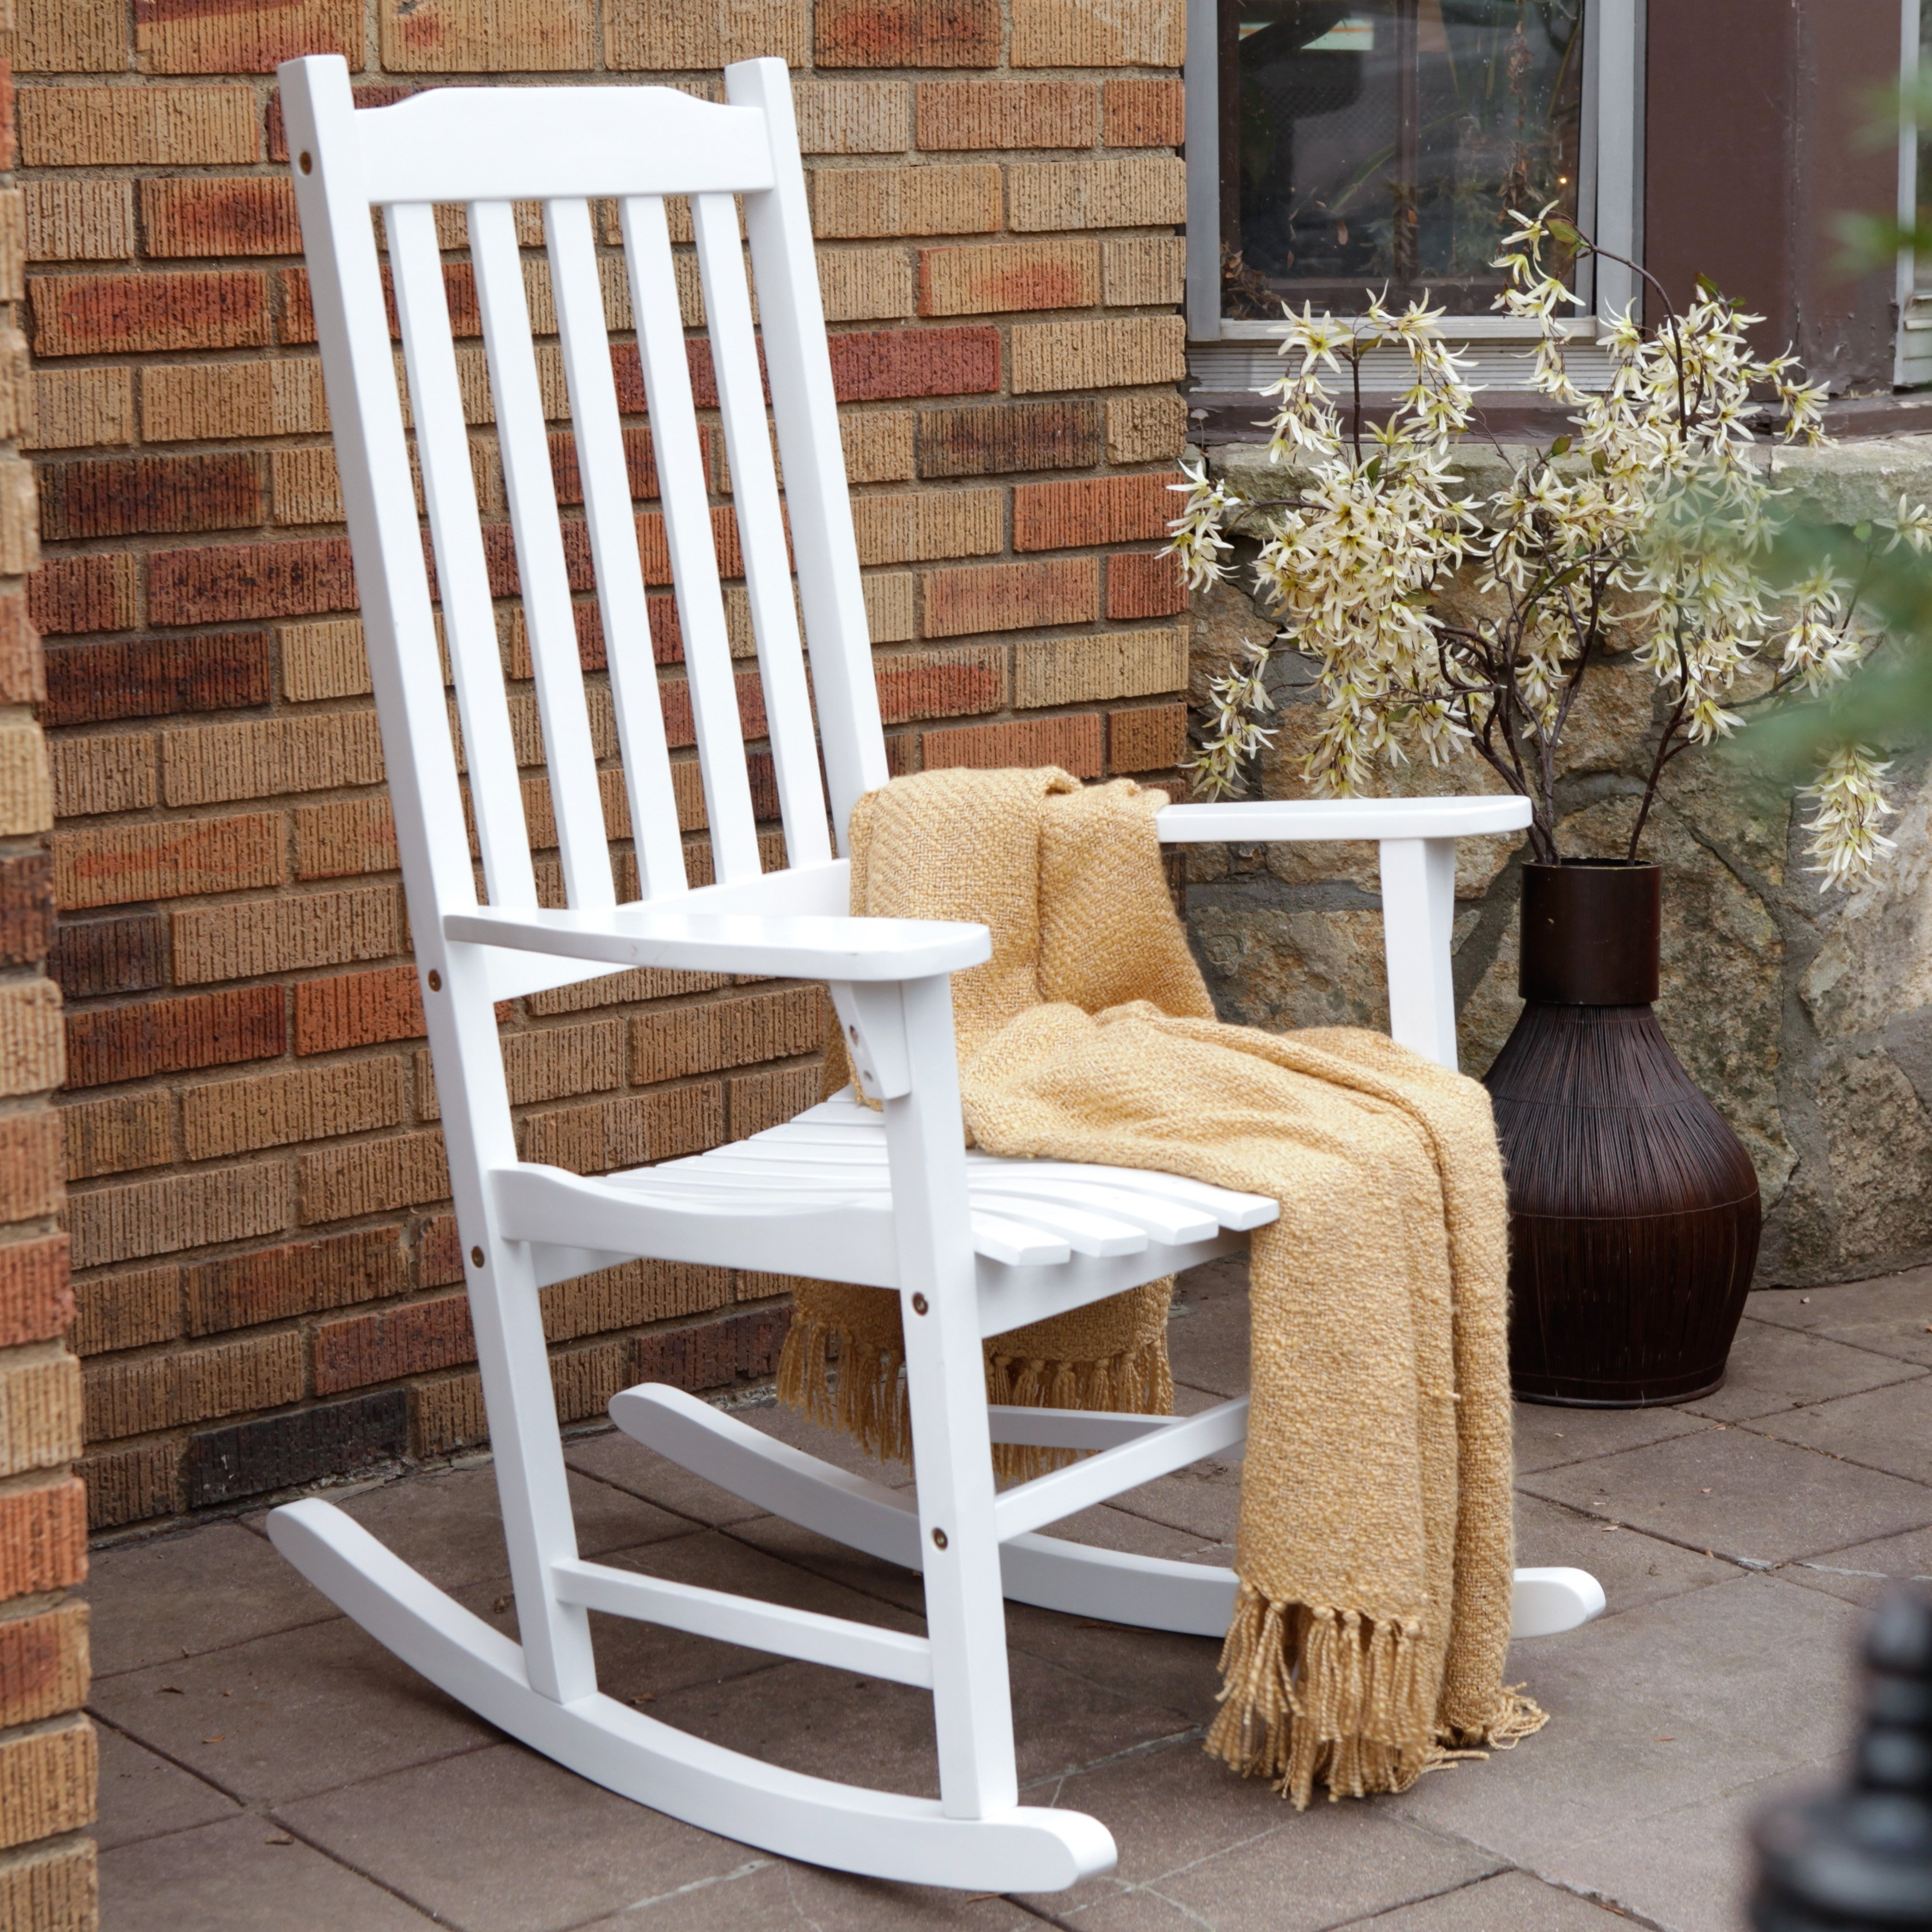 Coral Coast Indoor/outdoor Mission Slat Rocking Chair – White Pertaining To Well Known Patio Rocking Chairs (View 3 of 20)